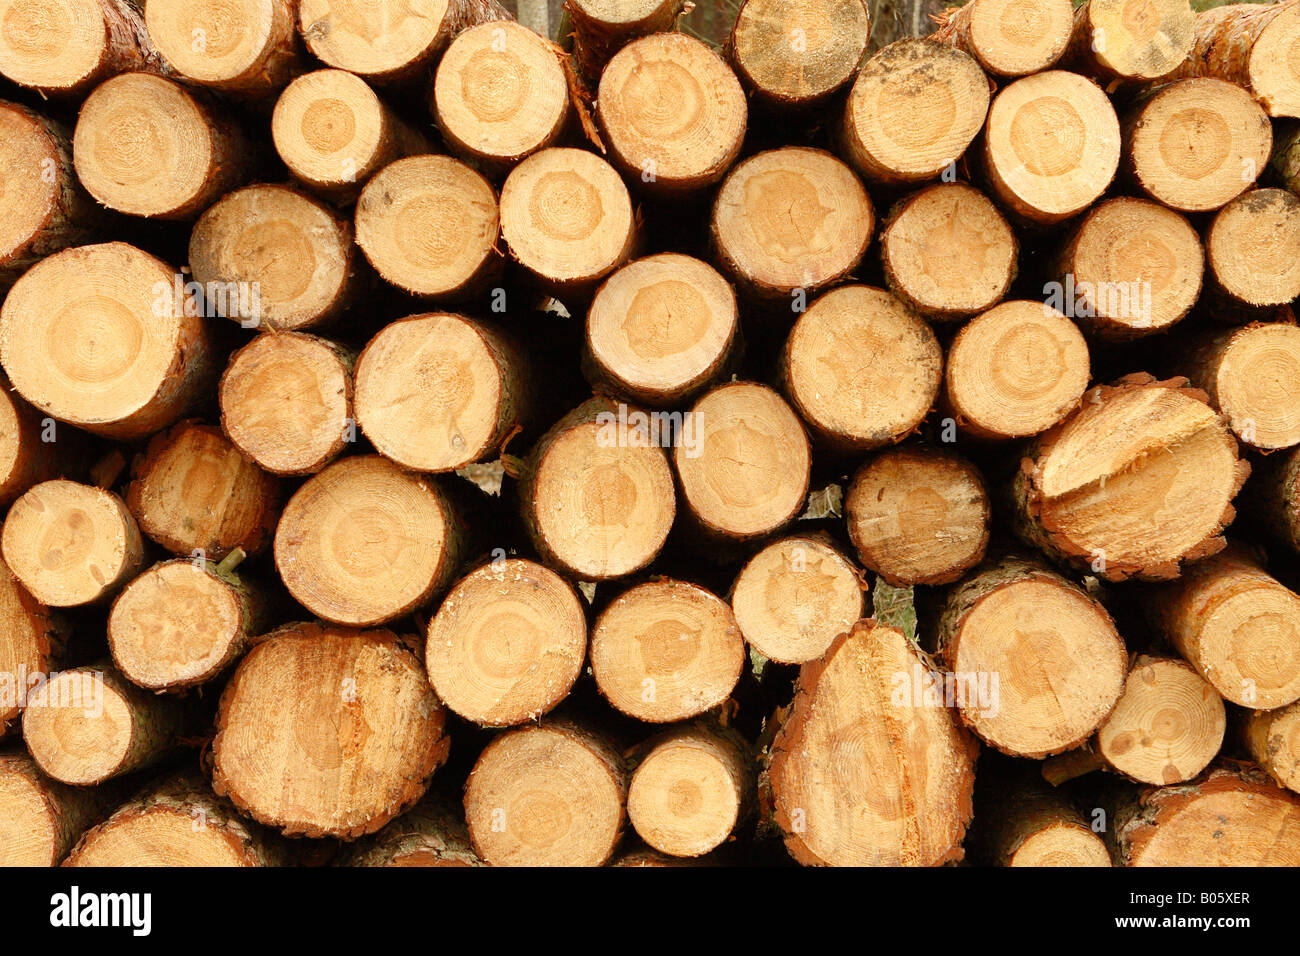 Cut red pine tree trunk timber lumber logs stacked in Pine tree timber